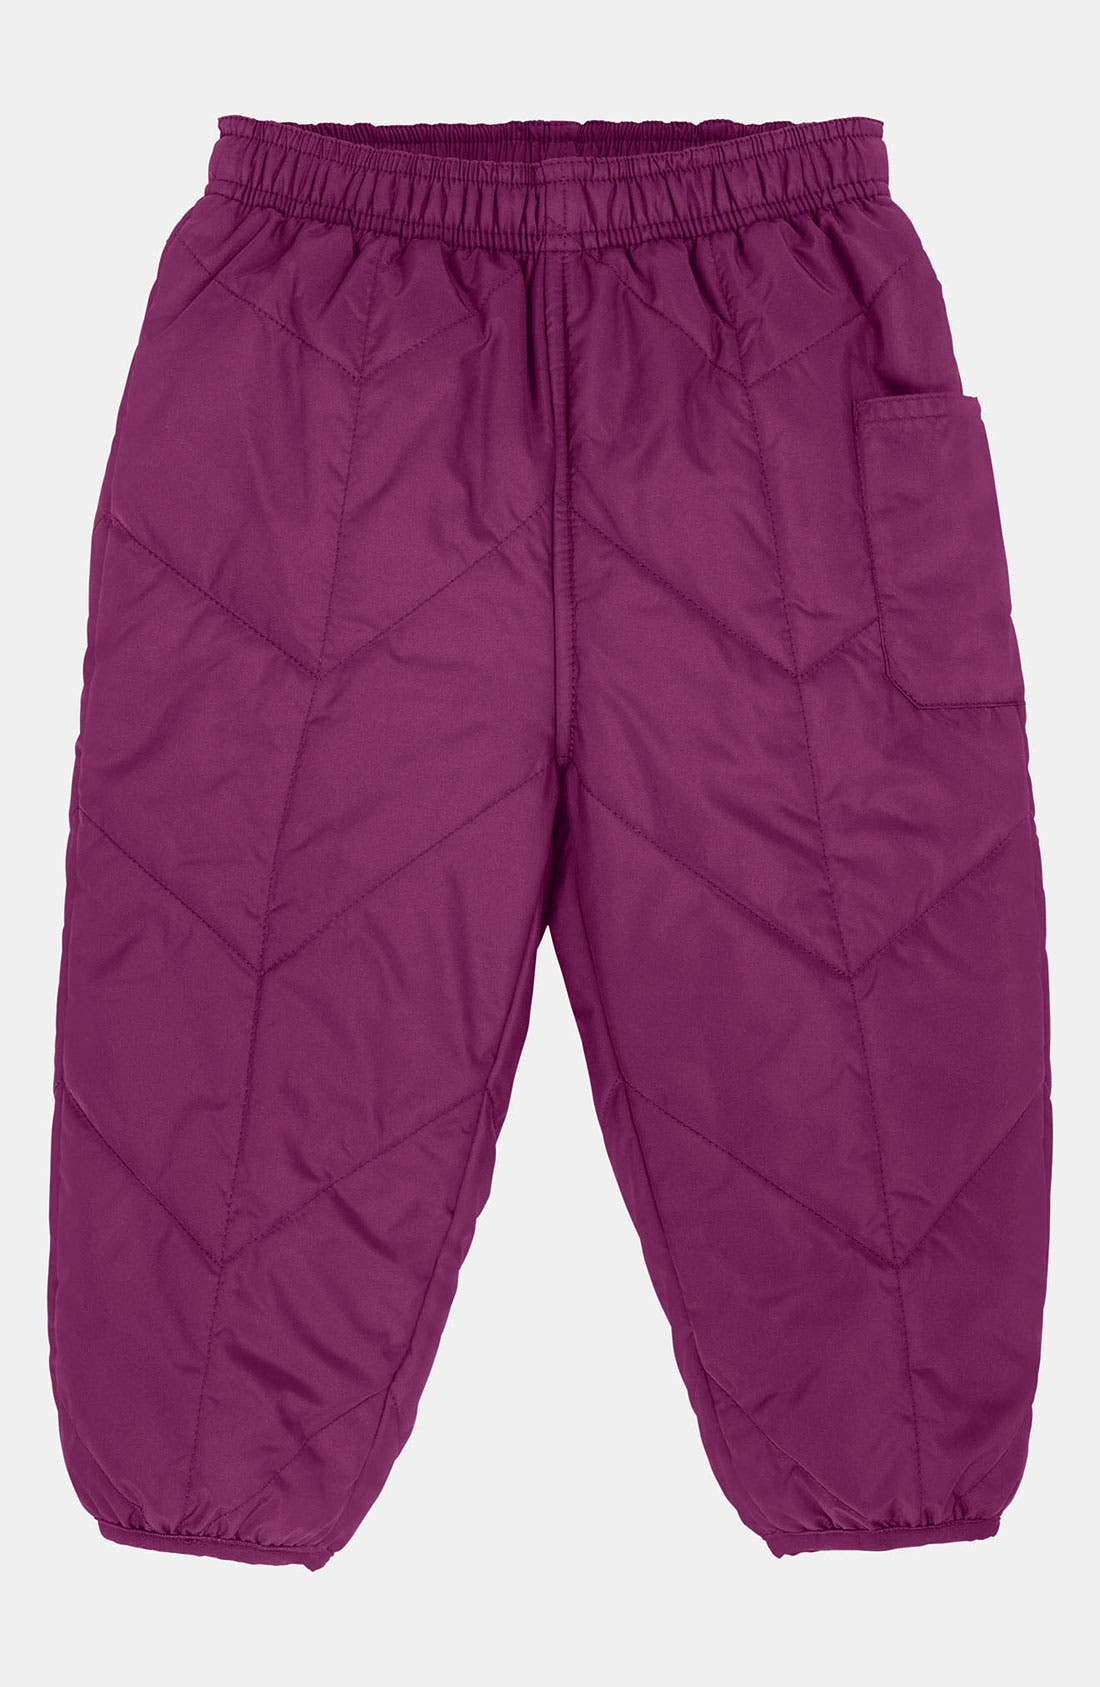 Main Image - The North Face 'Perrito' Reversible Snow Pants (Baby)